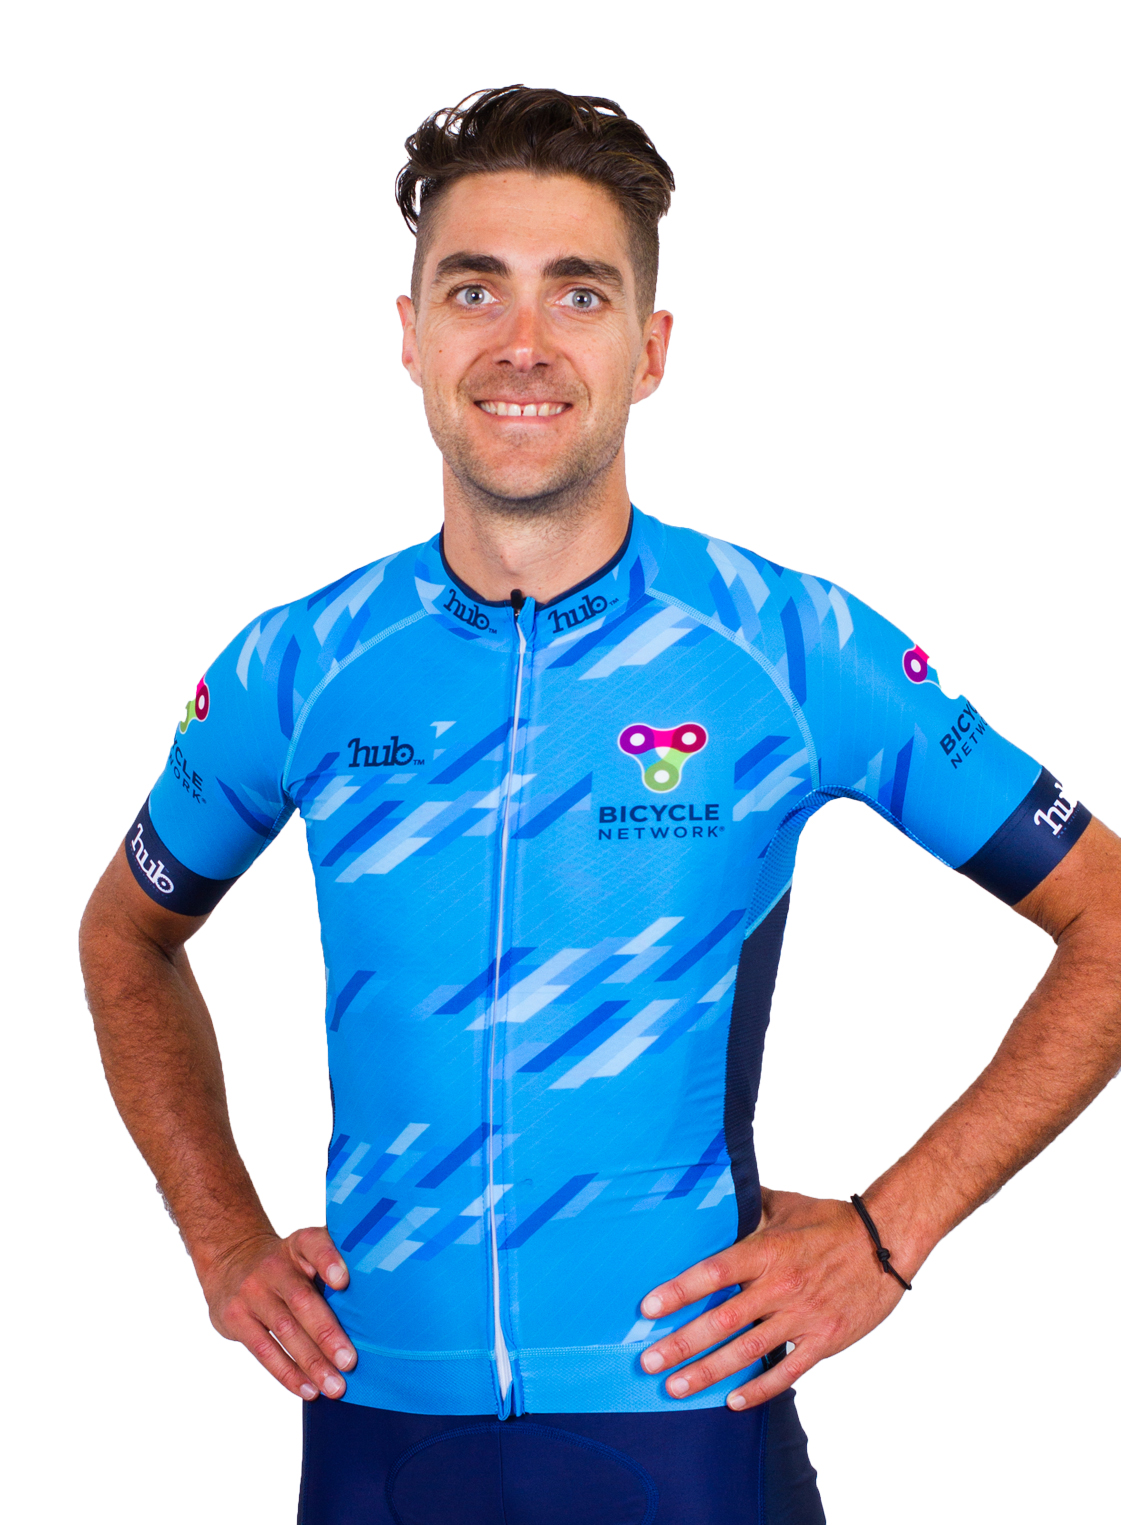 Team Bicycle Network rider Steve Lane